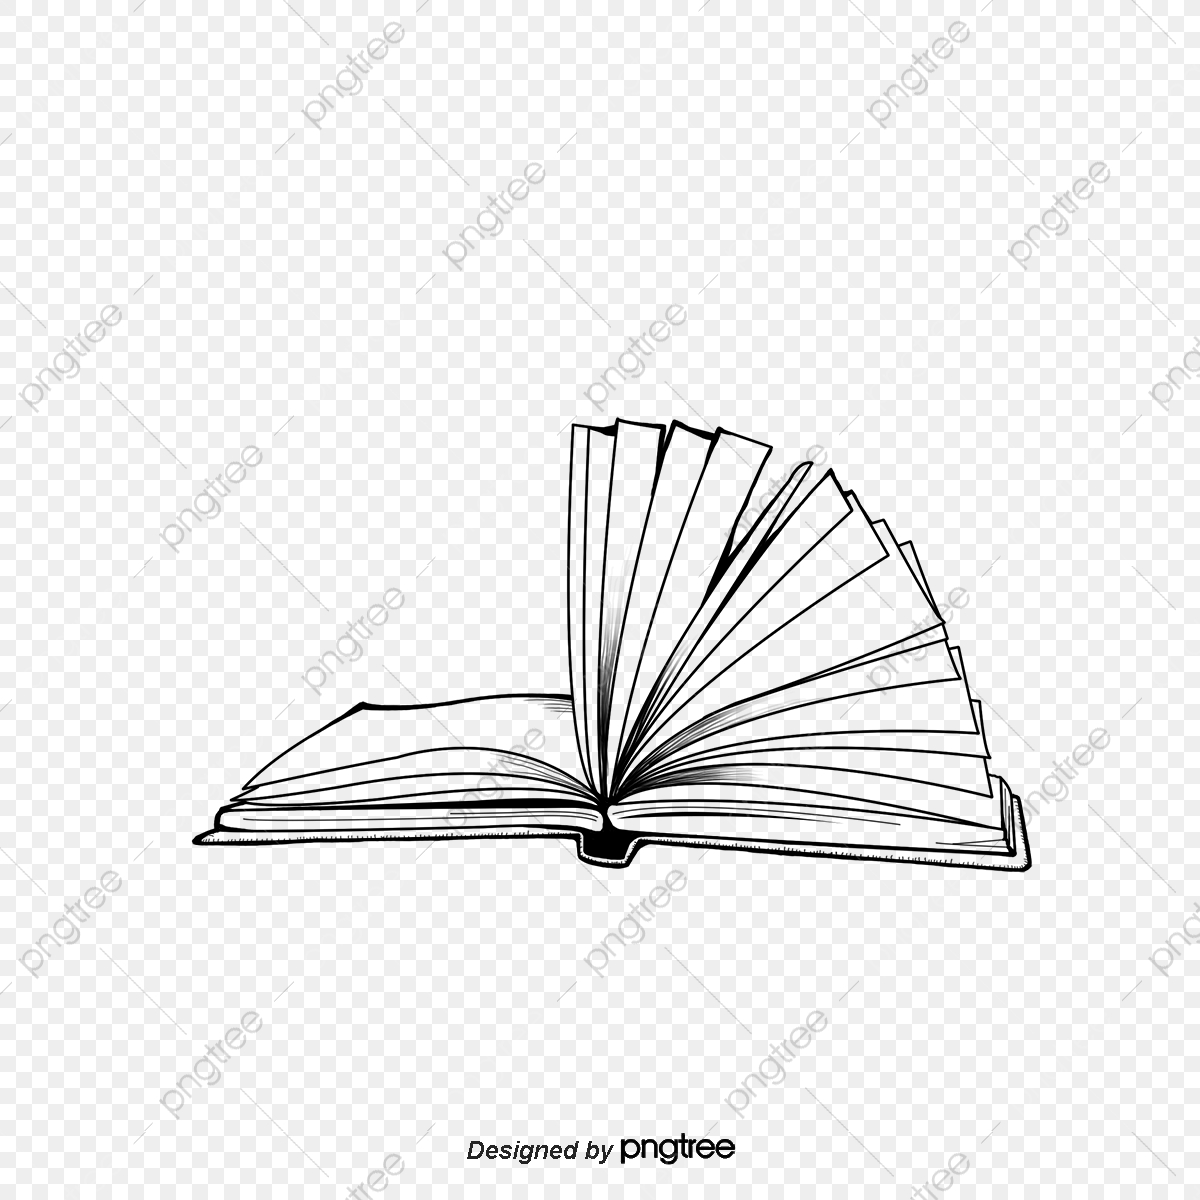 Reading day clipart black and white stock Cartoon Reading Day Creative Posters No Buttons Png, Reading ... black and white stock